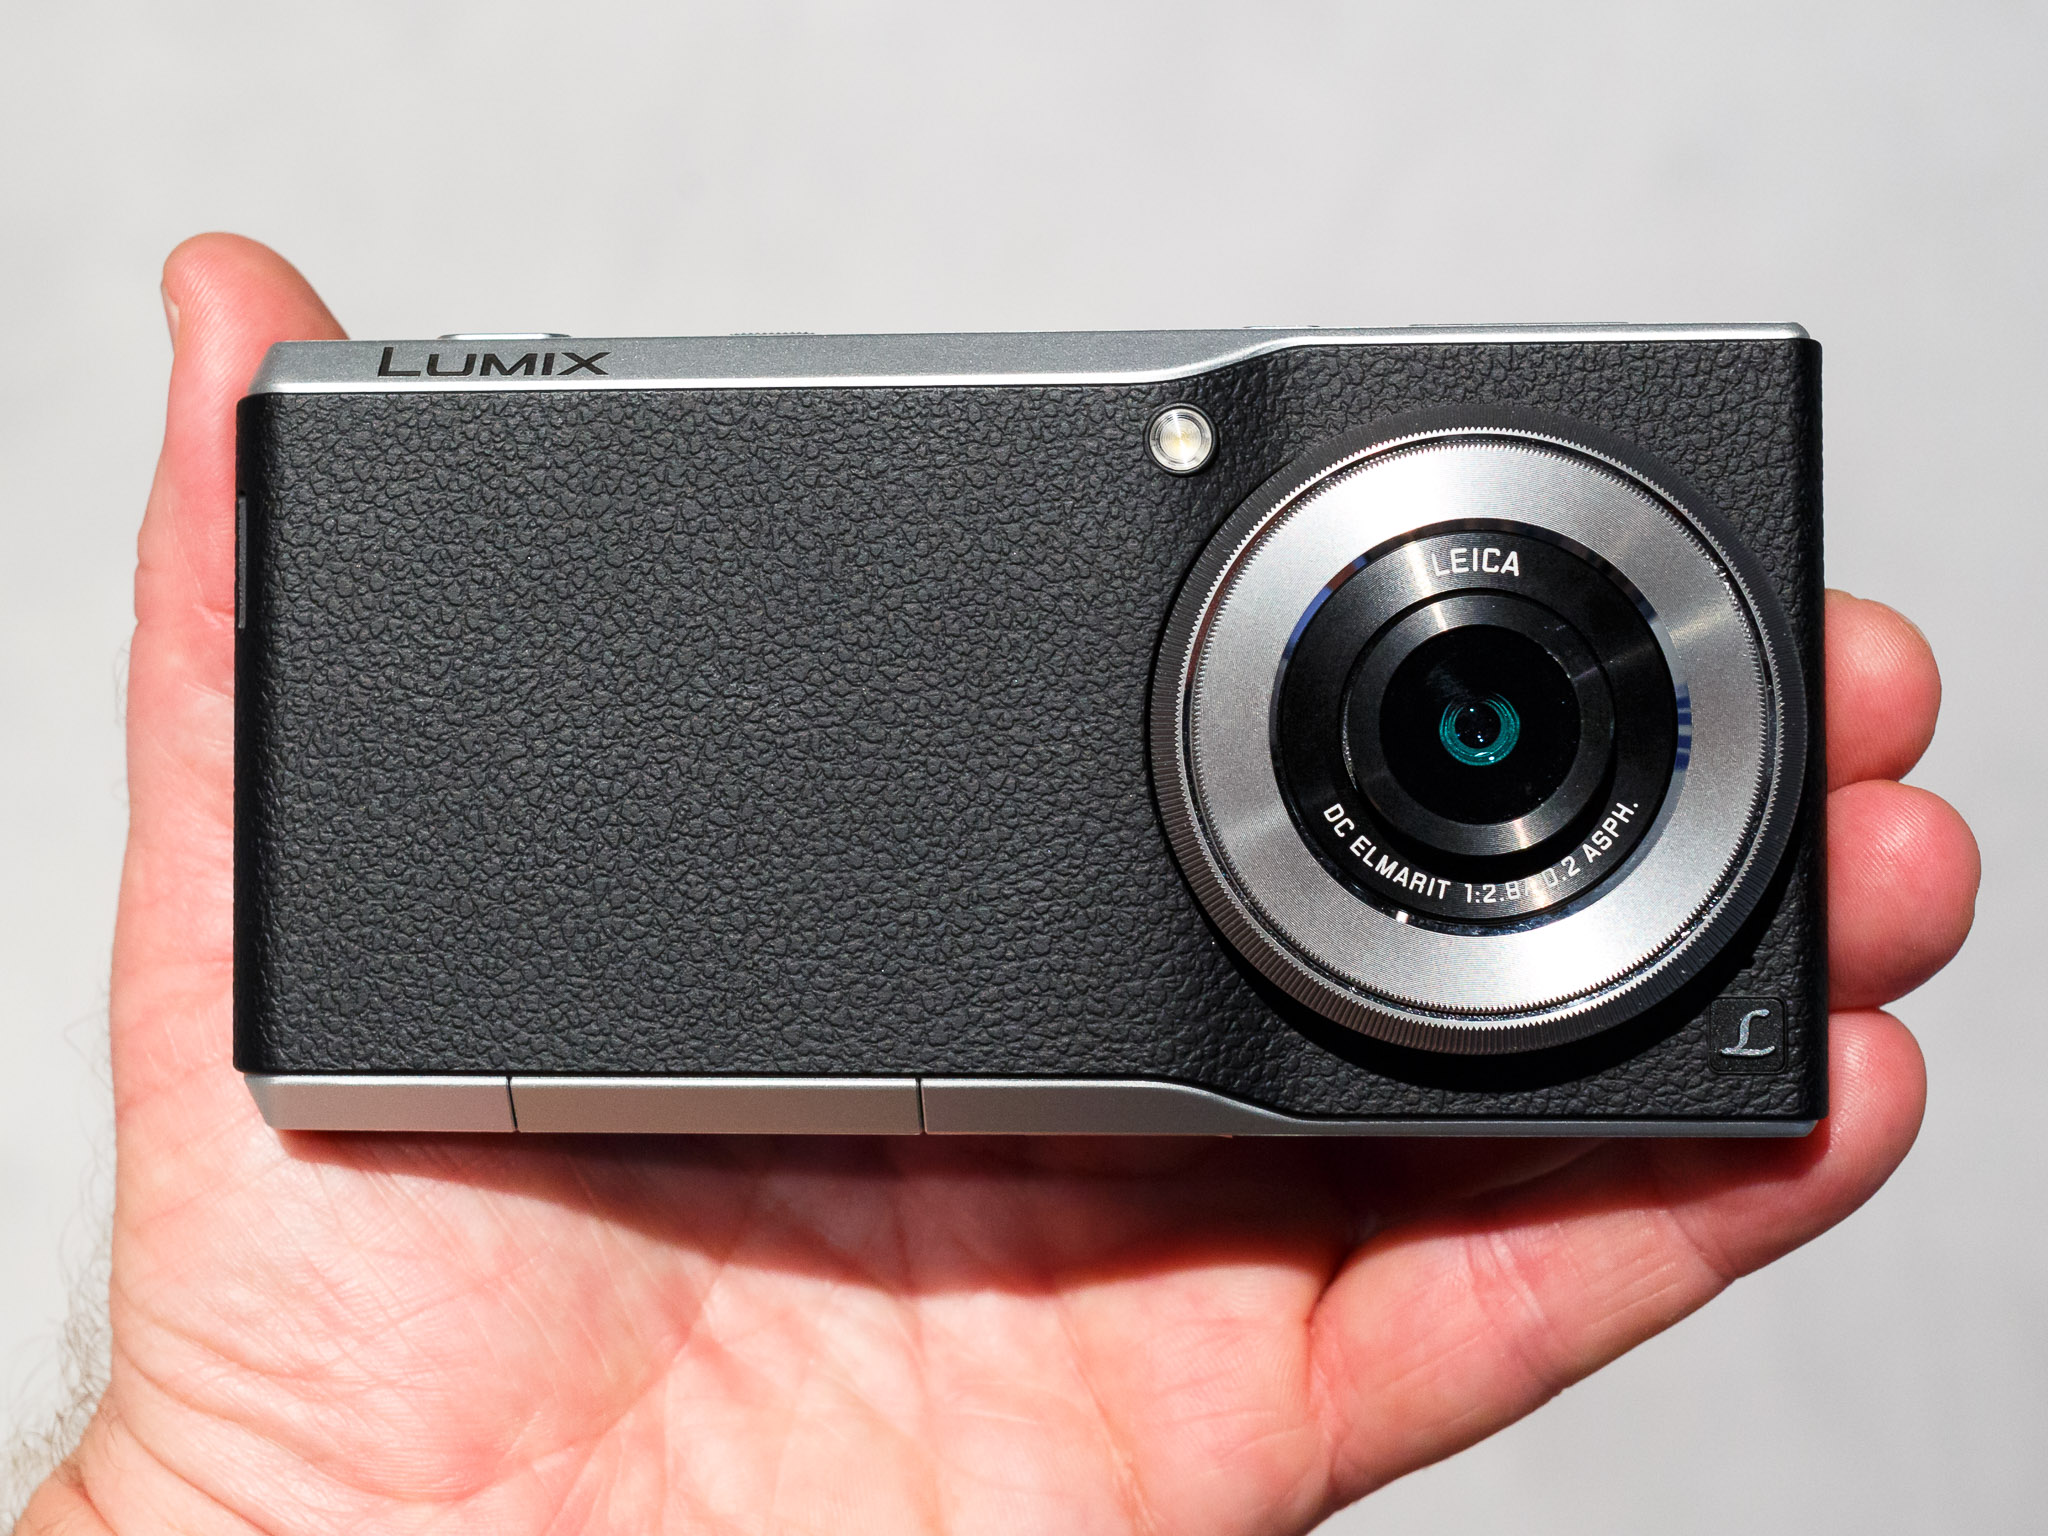 The Panasonic CM1 is an unusual marriage of Android smartphone and slim, higher-end camera.